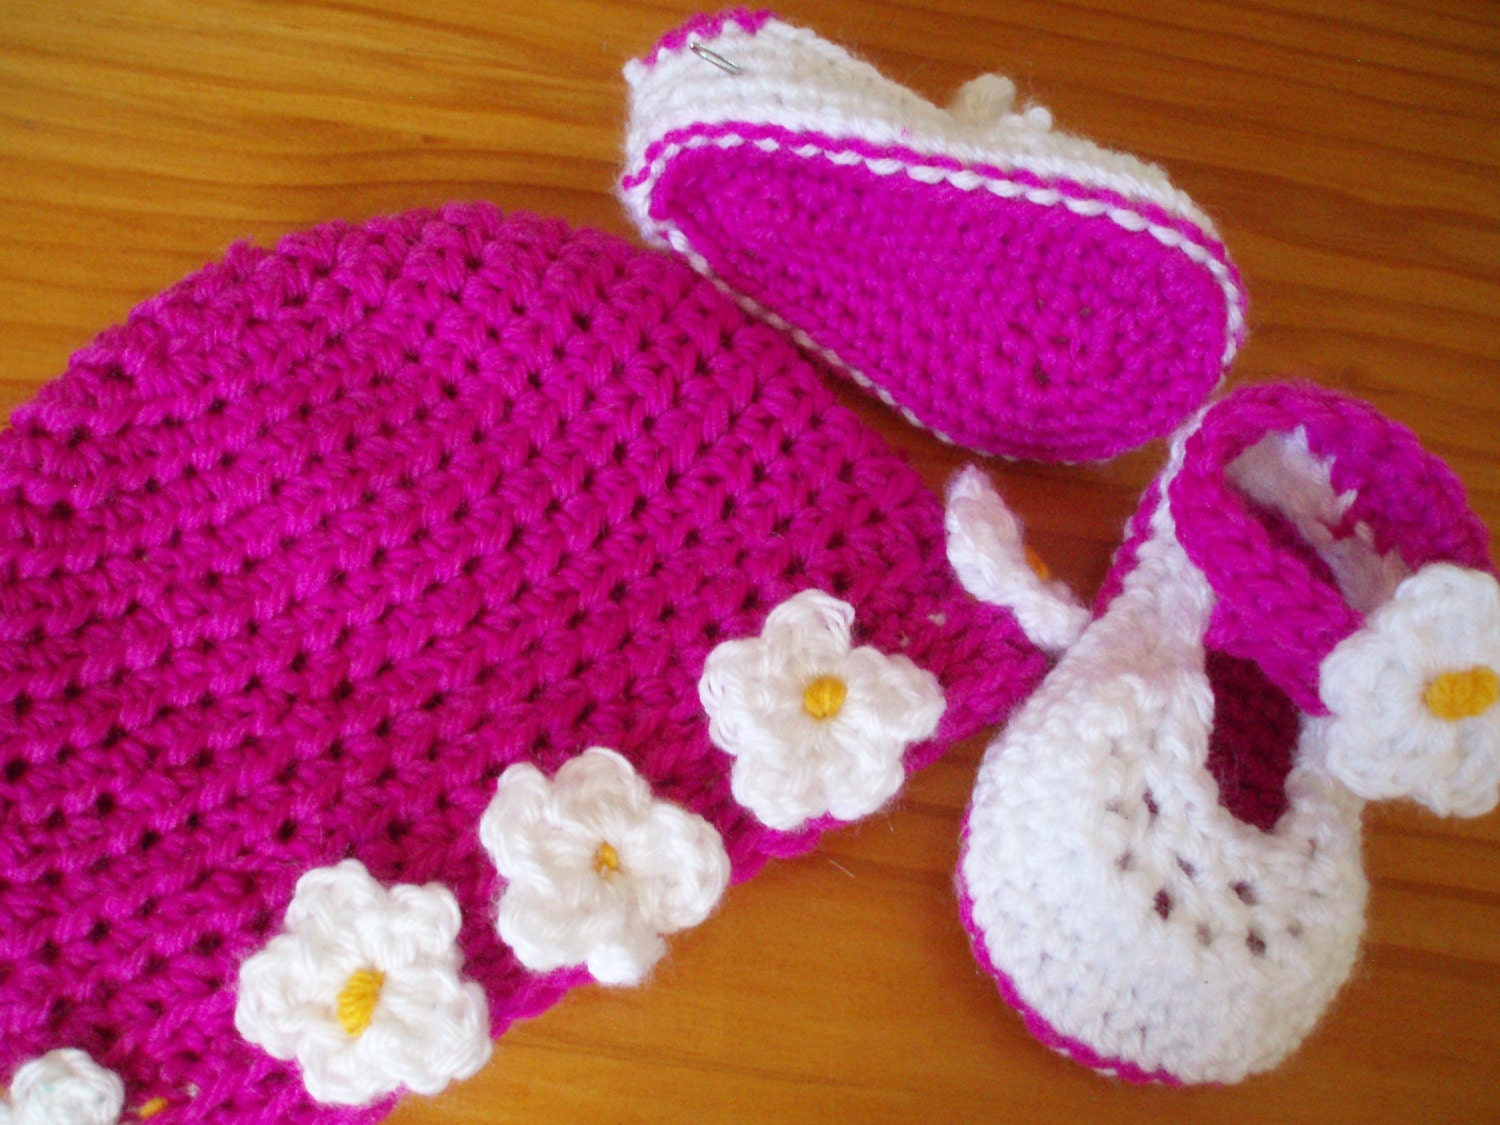 Crochet Pattern Spring Baby Booty Shoes and Hats - Littlewhiteduck